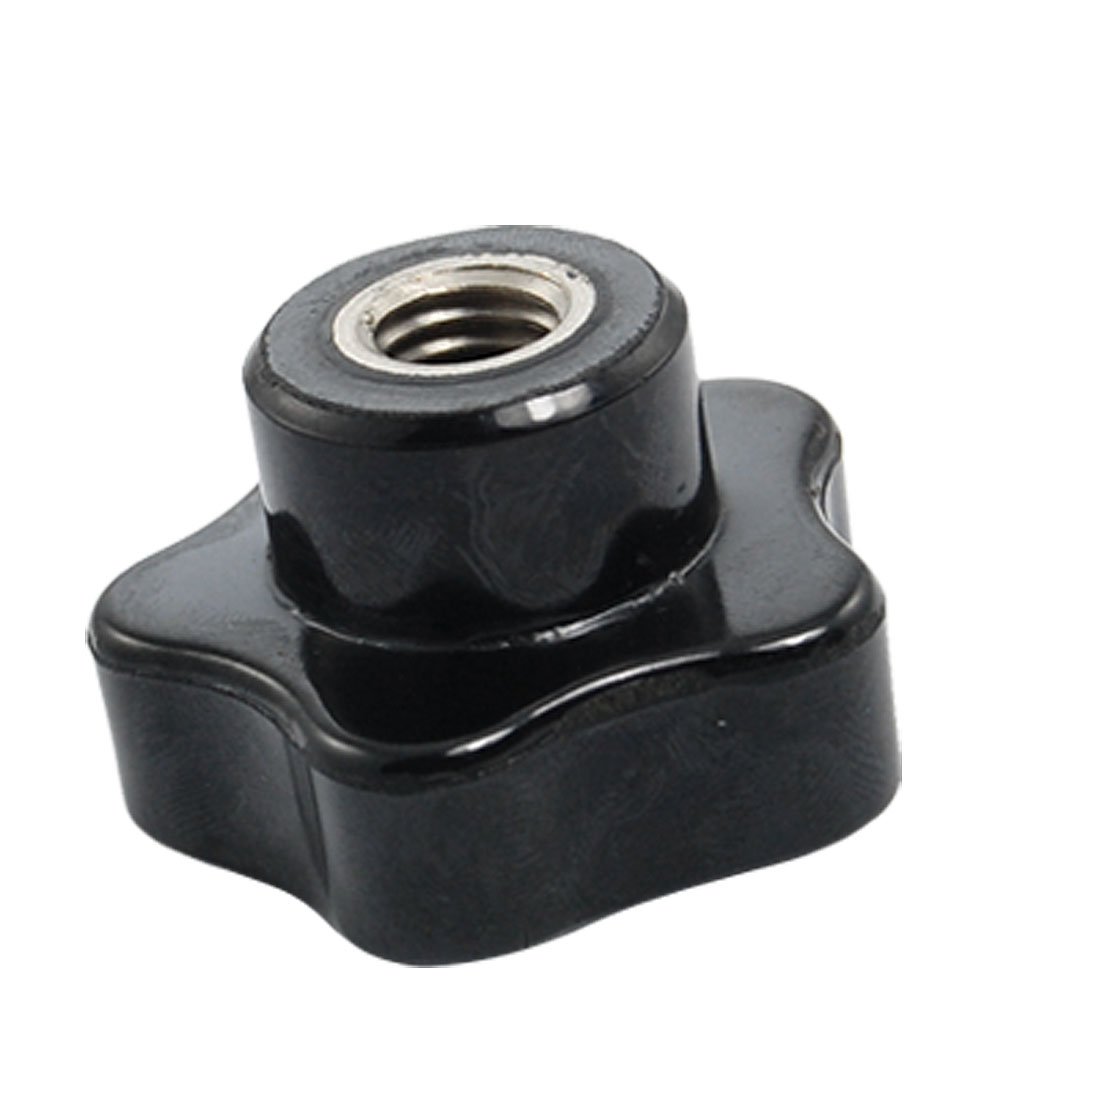 8mm Diameter Female Thread Black Plastic Grip Replacement Star Knob